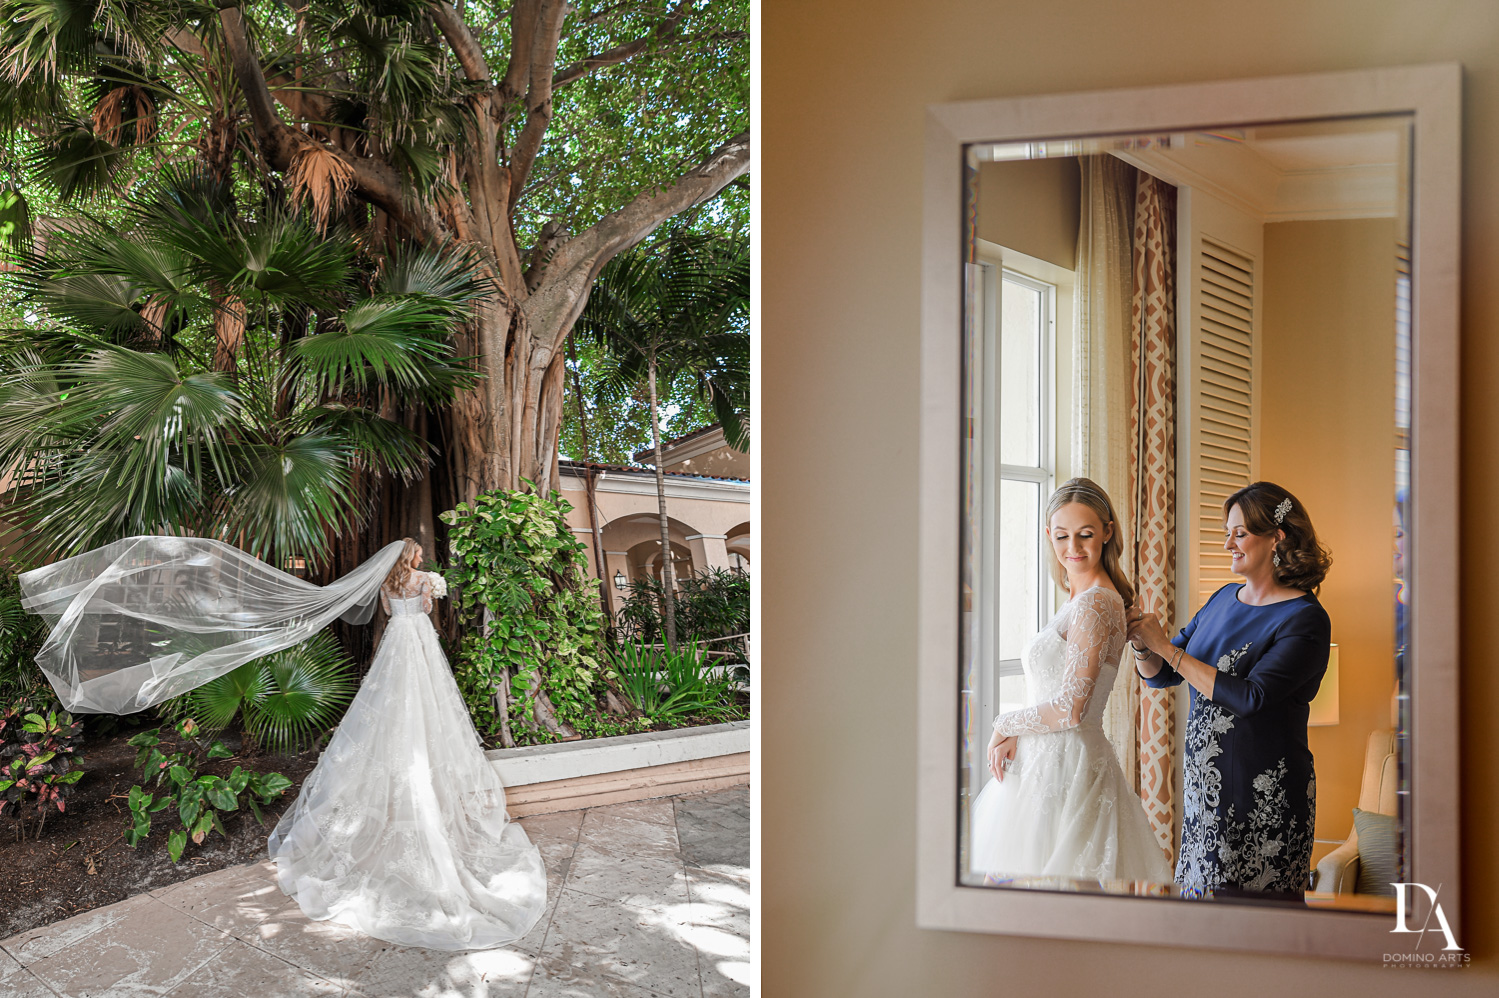 bridal portraits at Lavish Flowers & Crystals Wedding at Aventura Turnberry Jewish Center by Domino Arts Photography